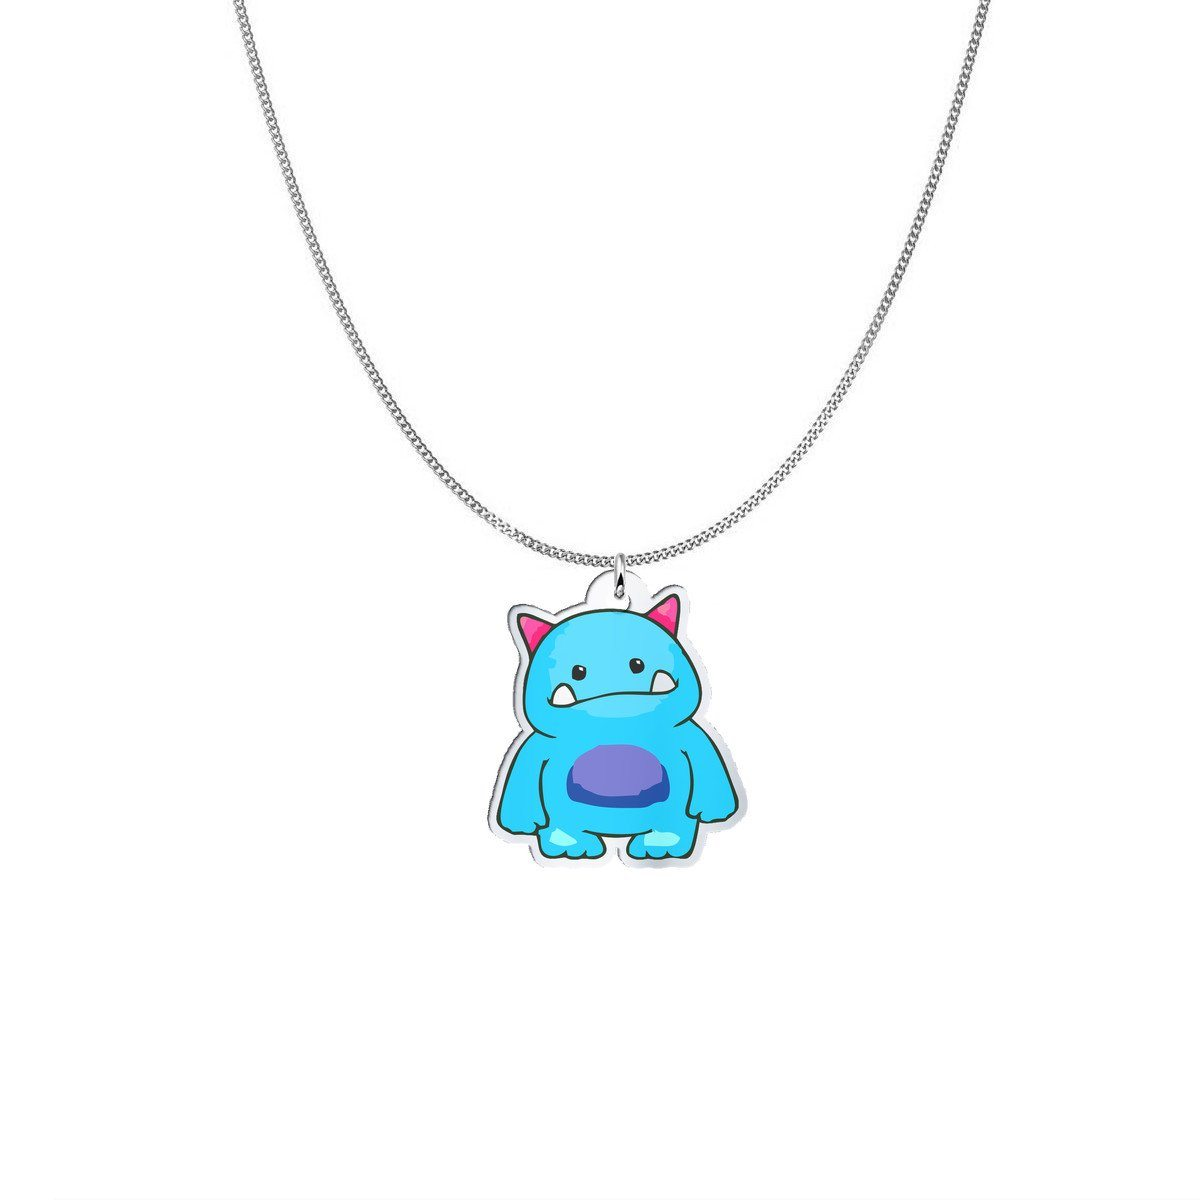 Addi the Adrenal Insufficiency and Addison's Disease Monster Silver Necklace - The Unchargeables